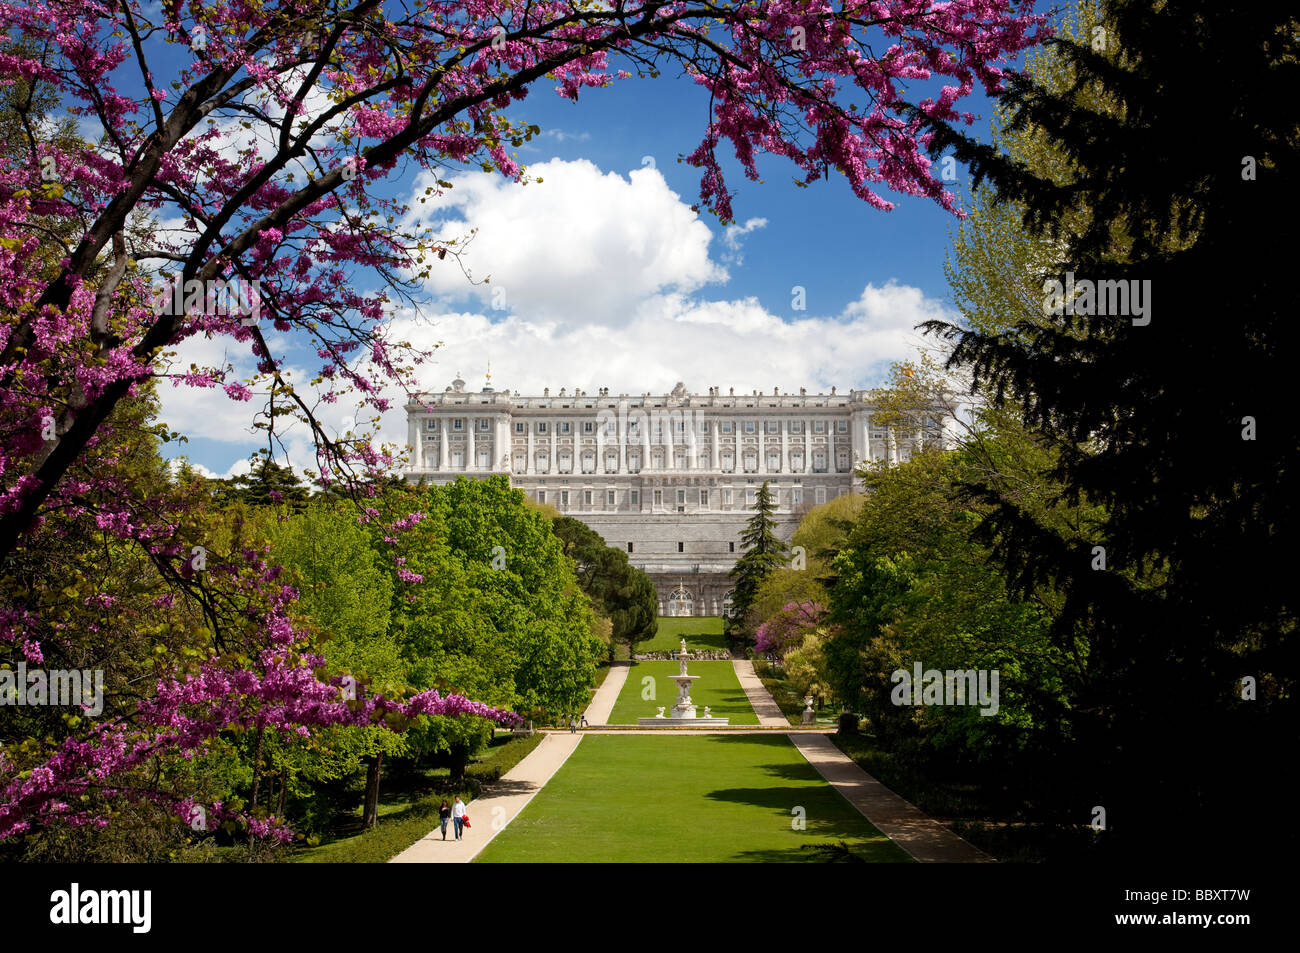 Royal Palace, Madrid Spain - Stock Image